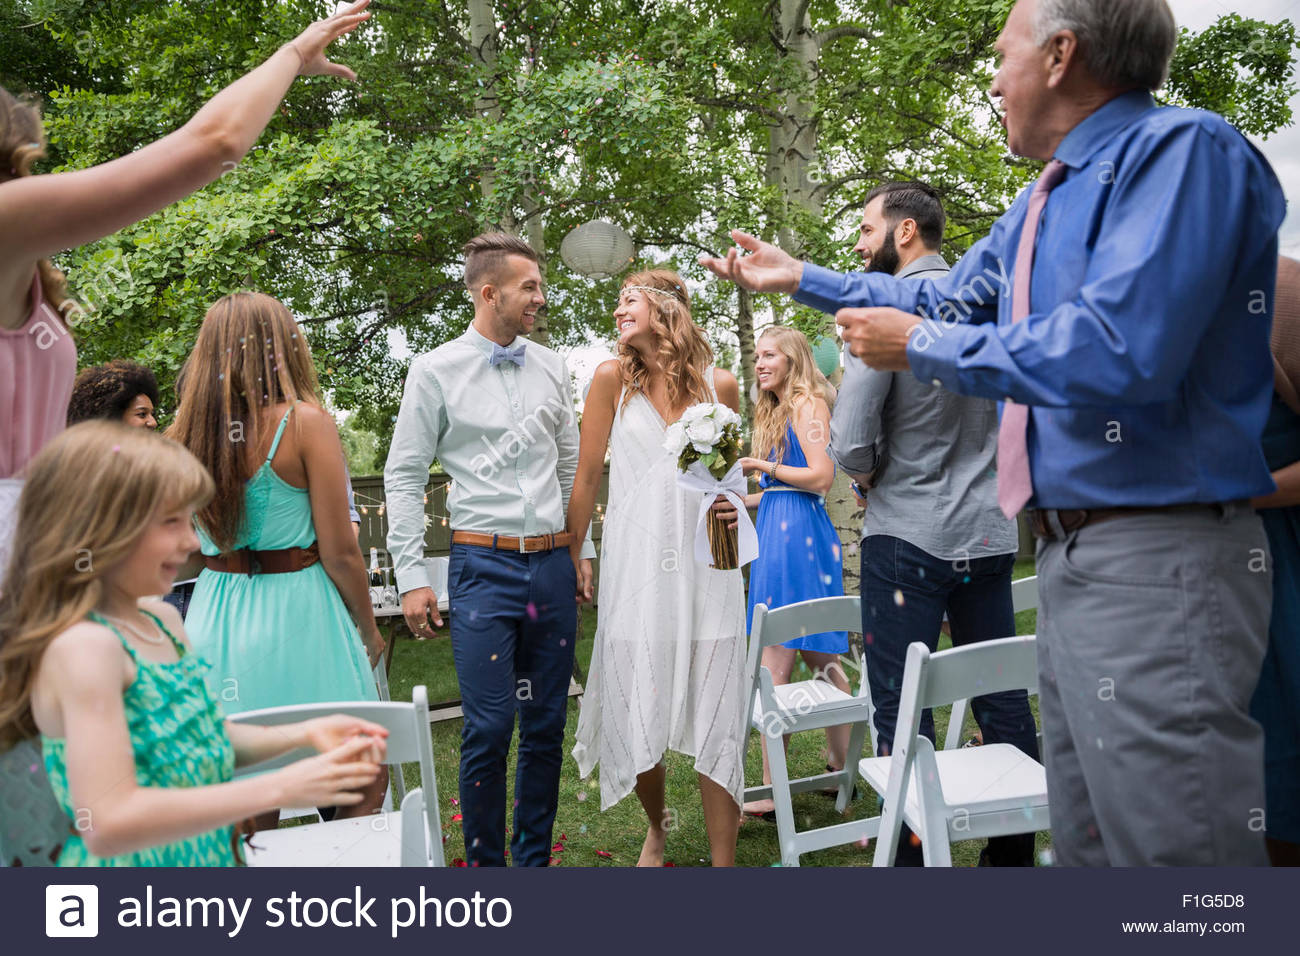 Guests throwing confetti over bride groom backyard wedding - Stock Image